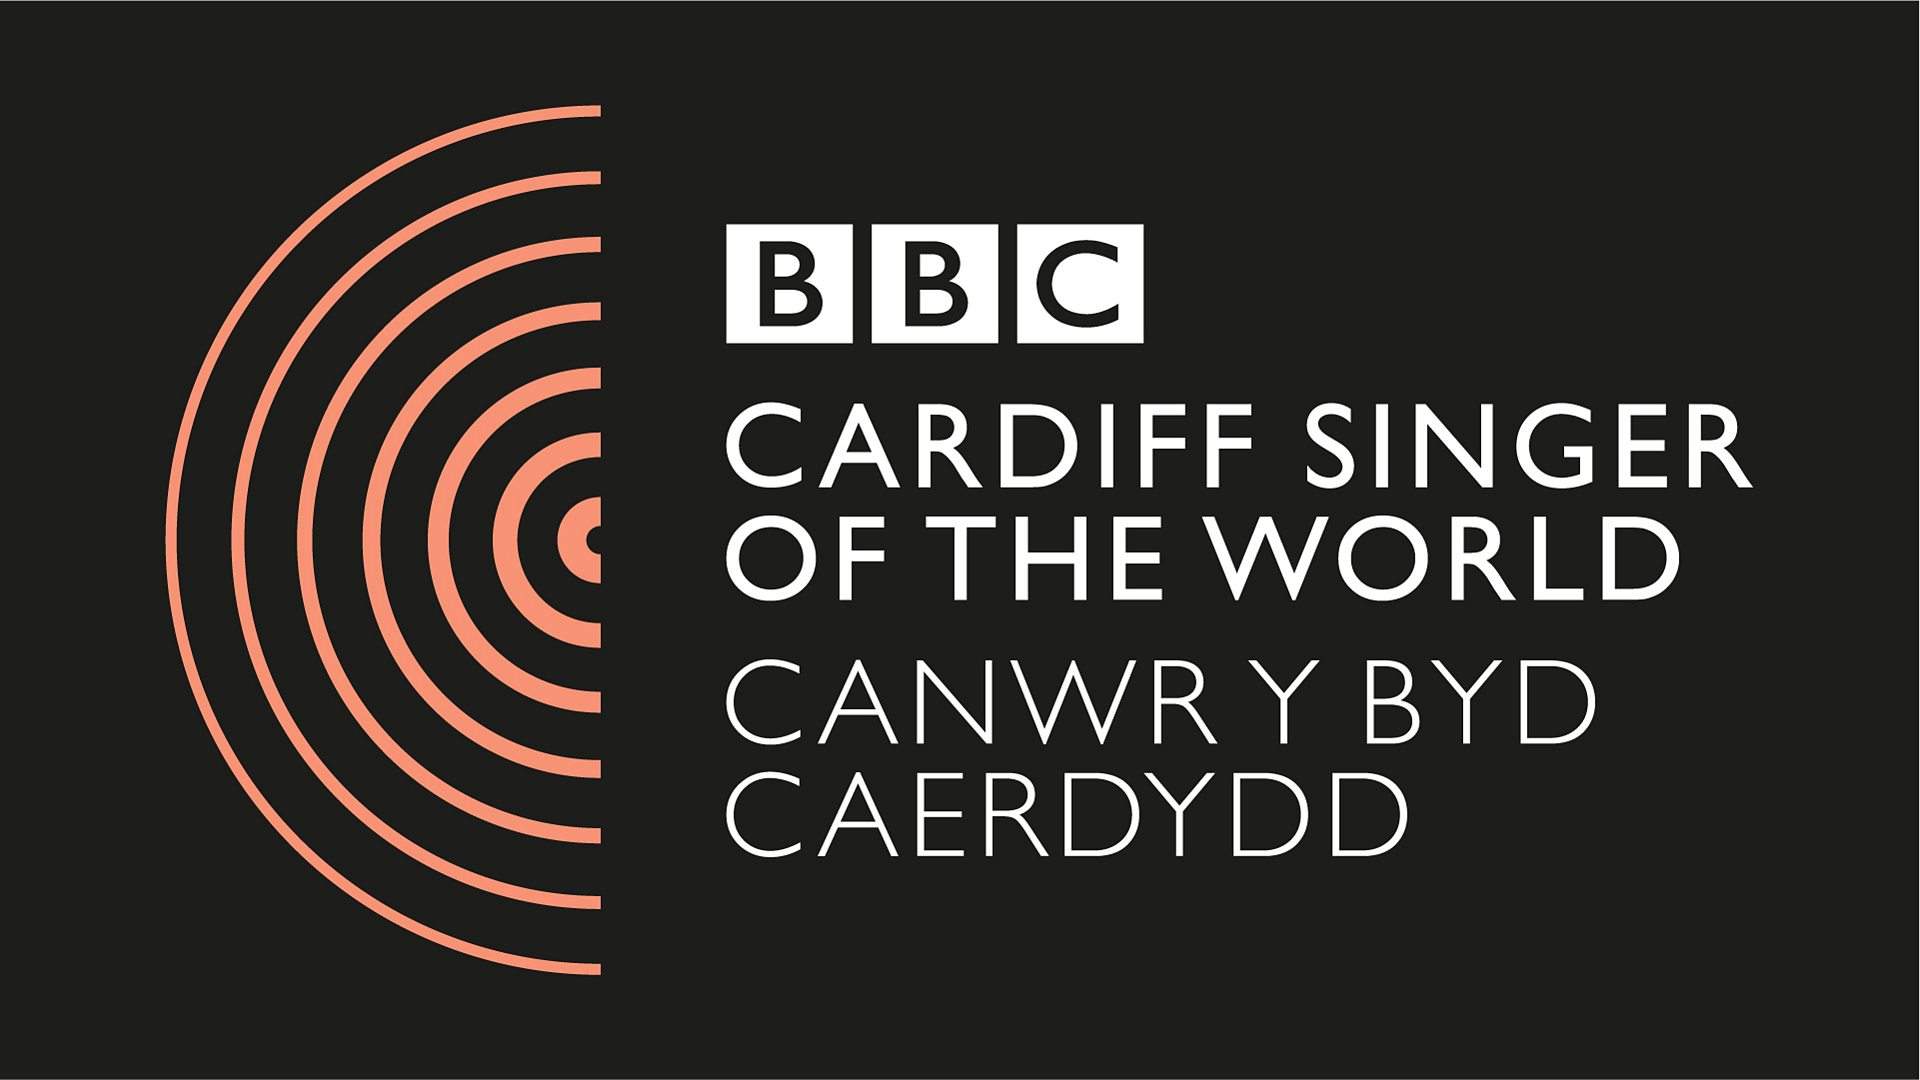 Bildergebnis für cardiff singers of the world 2019